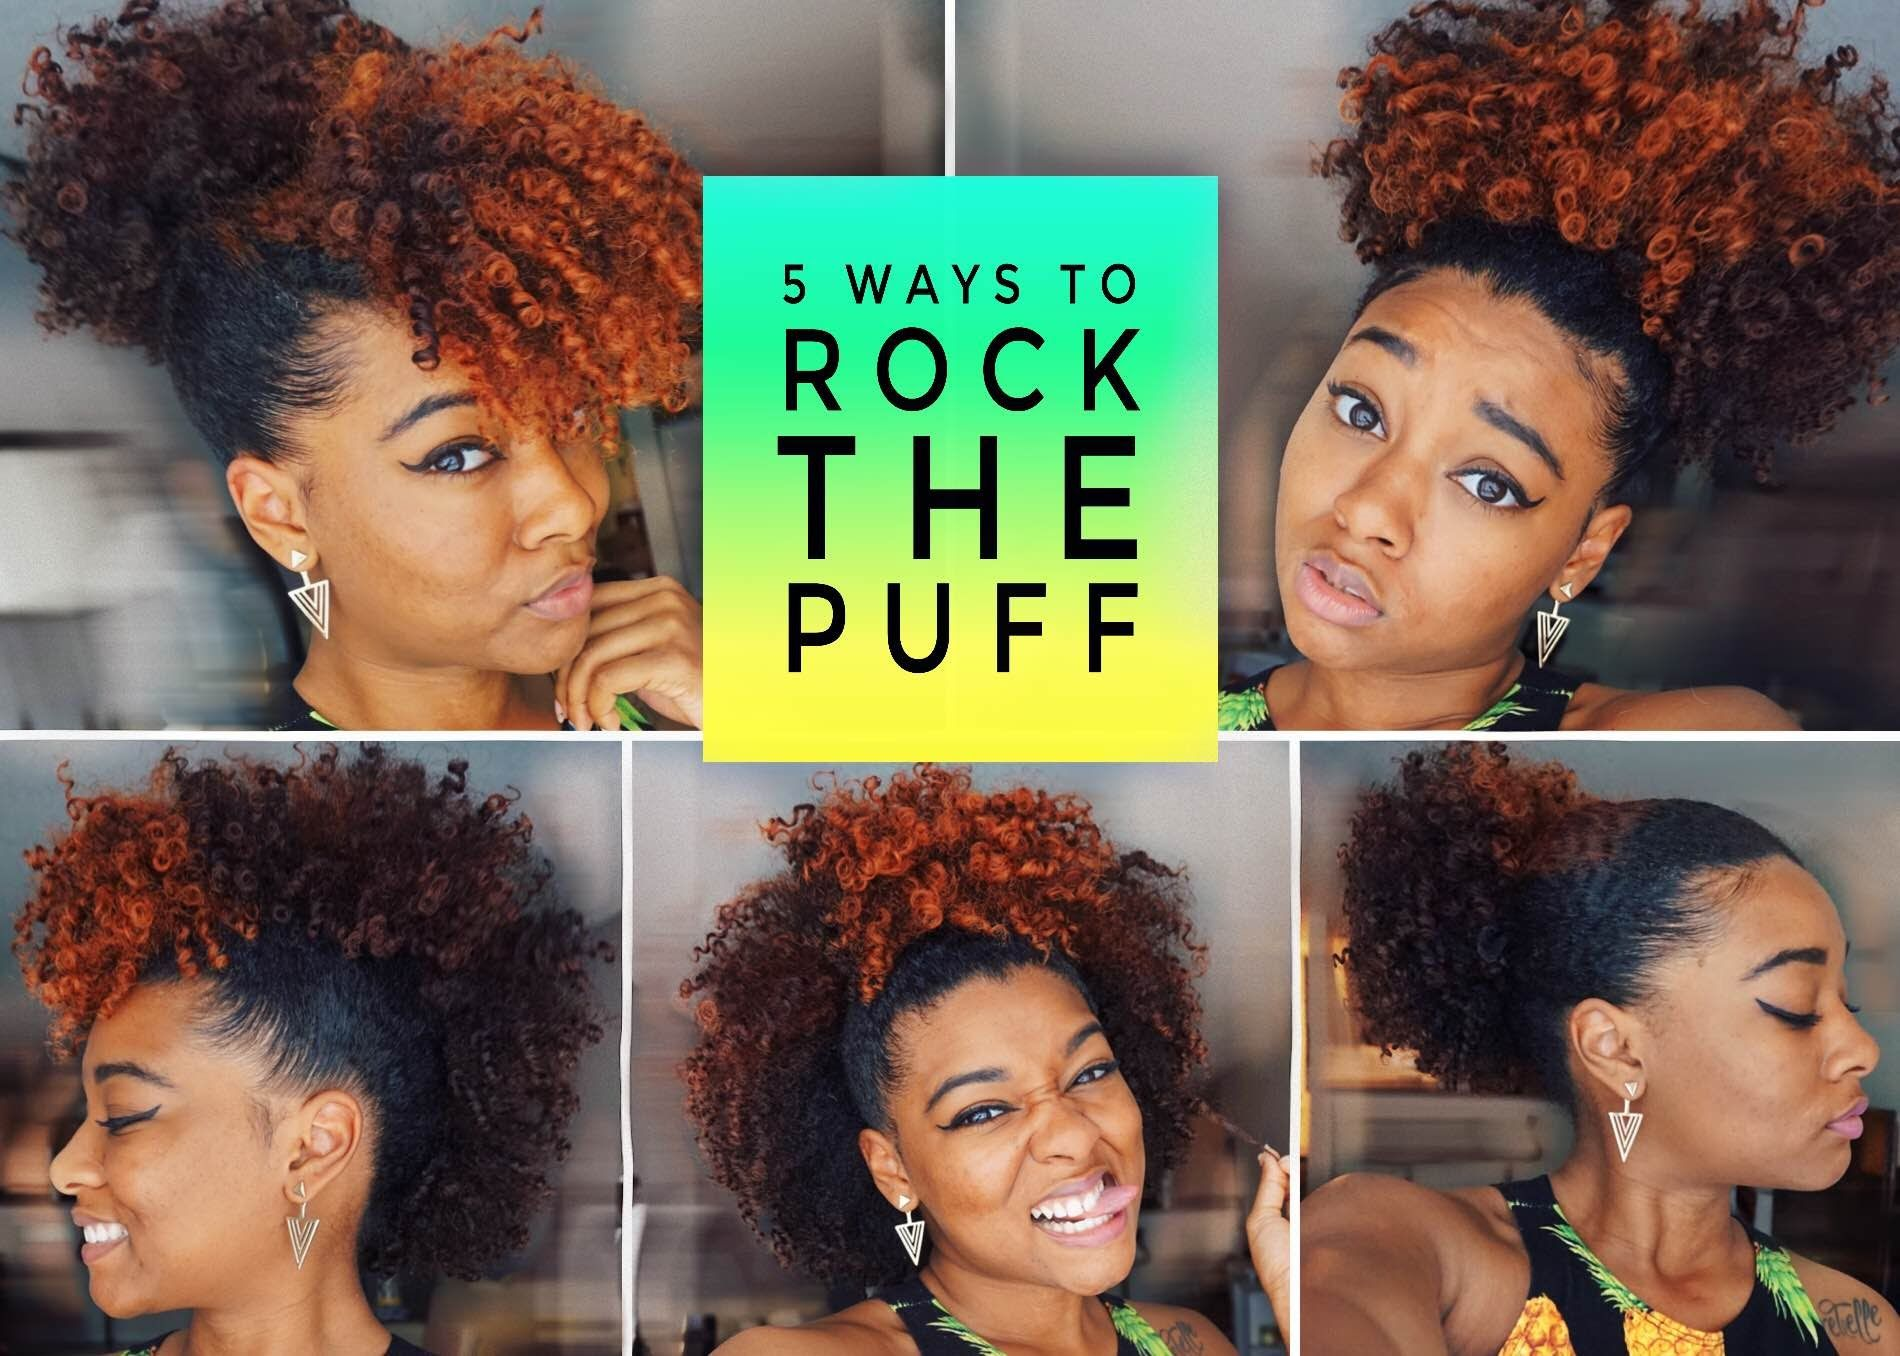 Easy Cute Puff Styles With Bangs Frohawk More Natural Hair